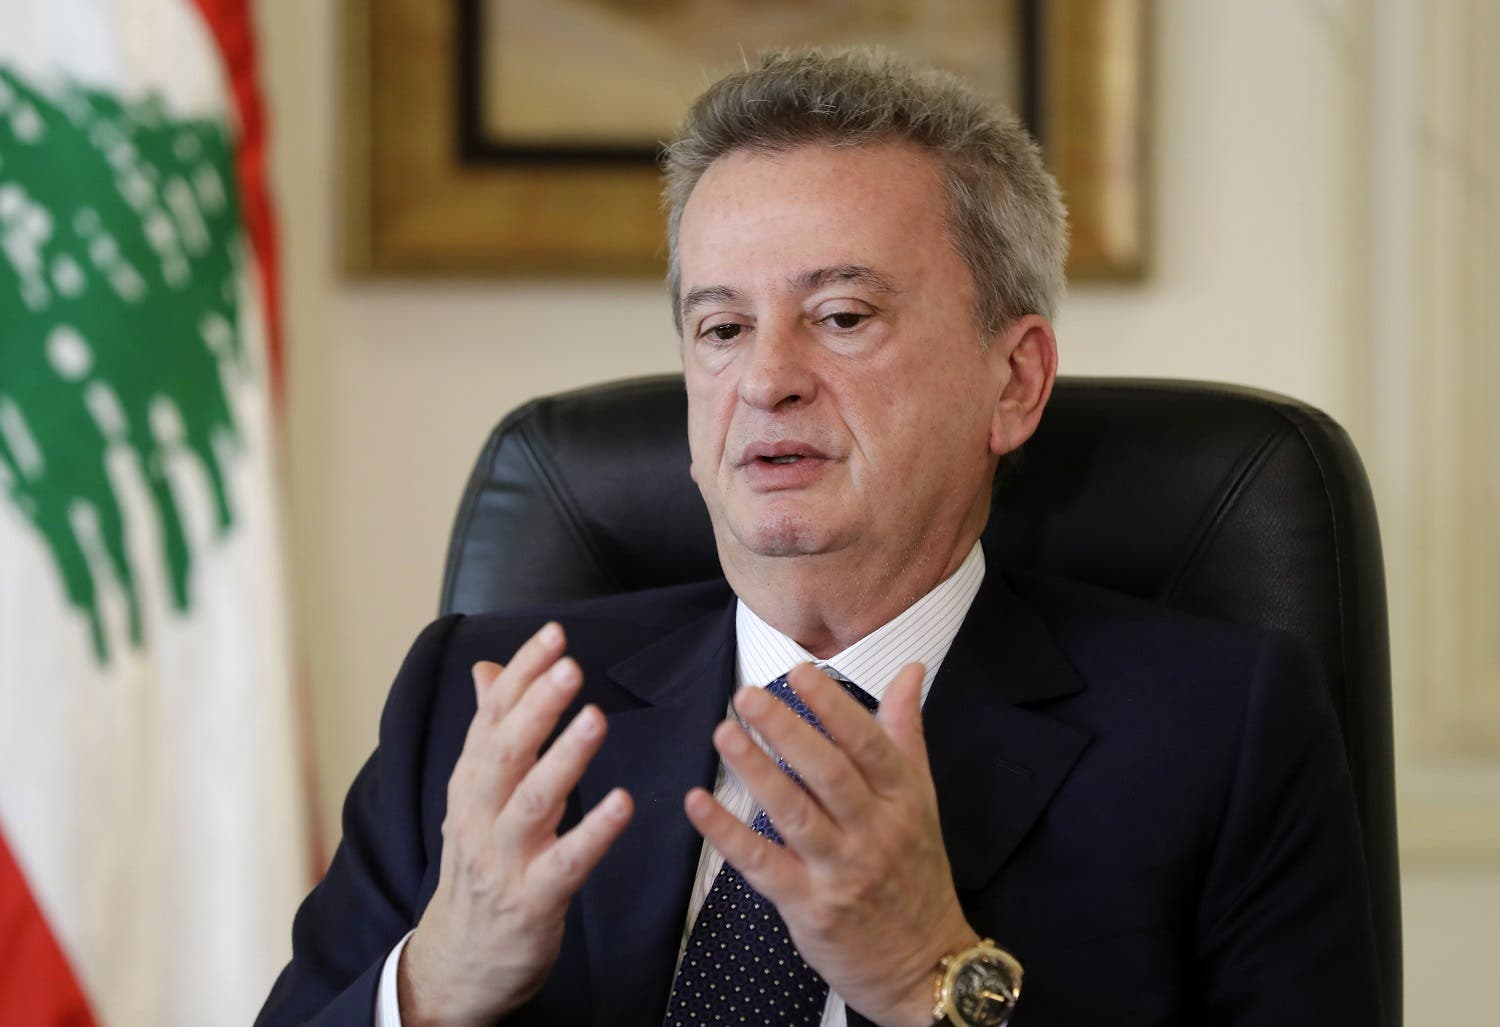 Lebanon's Central Bank Governor Riad Salameh speaks to a reporter at his office in Beirut on December 15, 2017. (AFP)